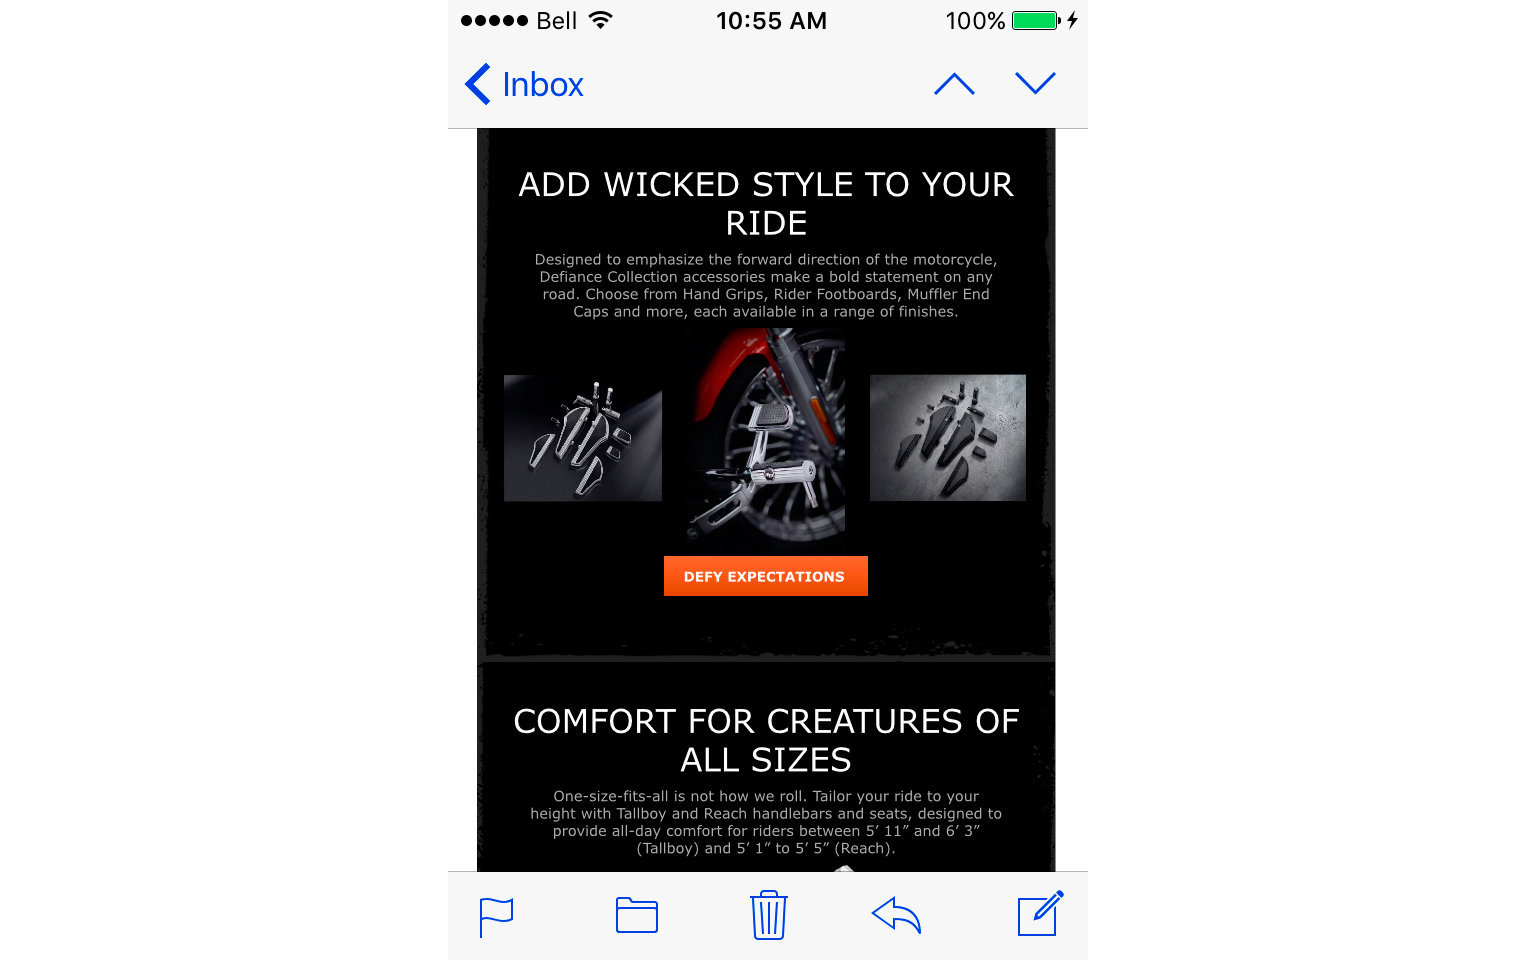 HARLEY-DAVIDSON ACCESSORIES EMAIL  8/10